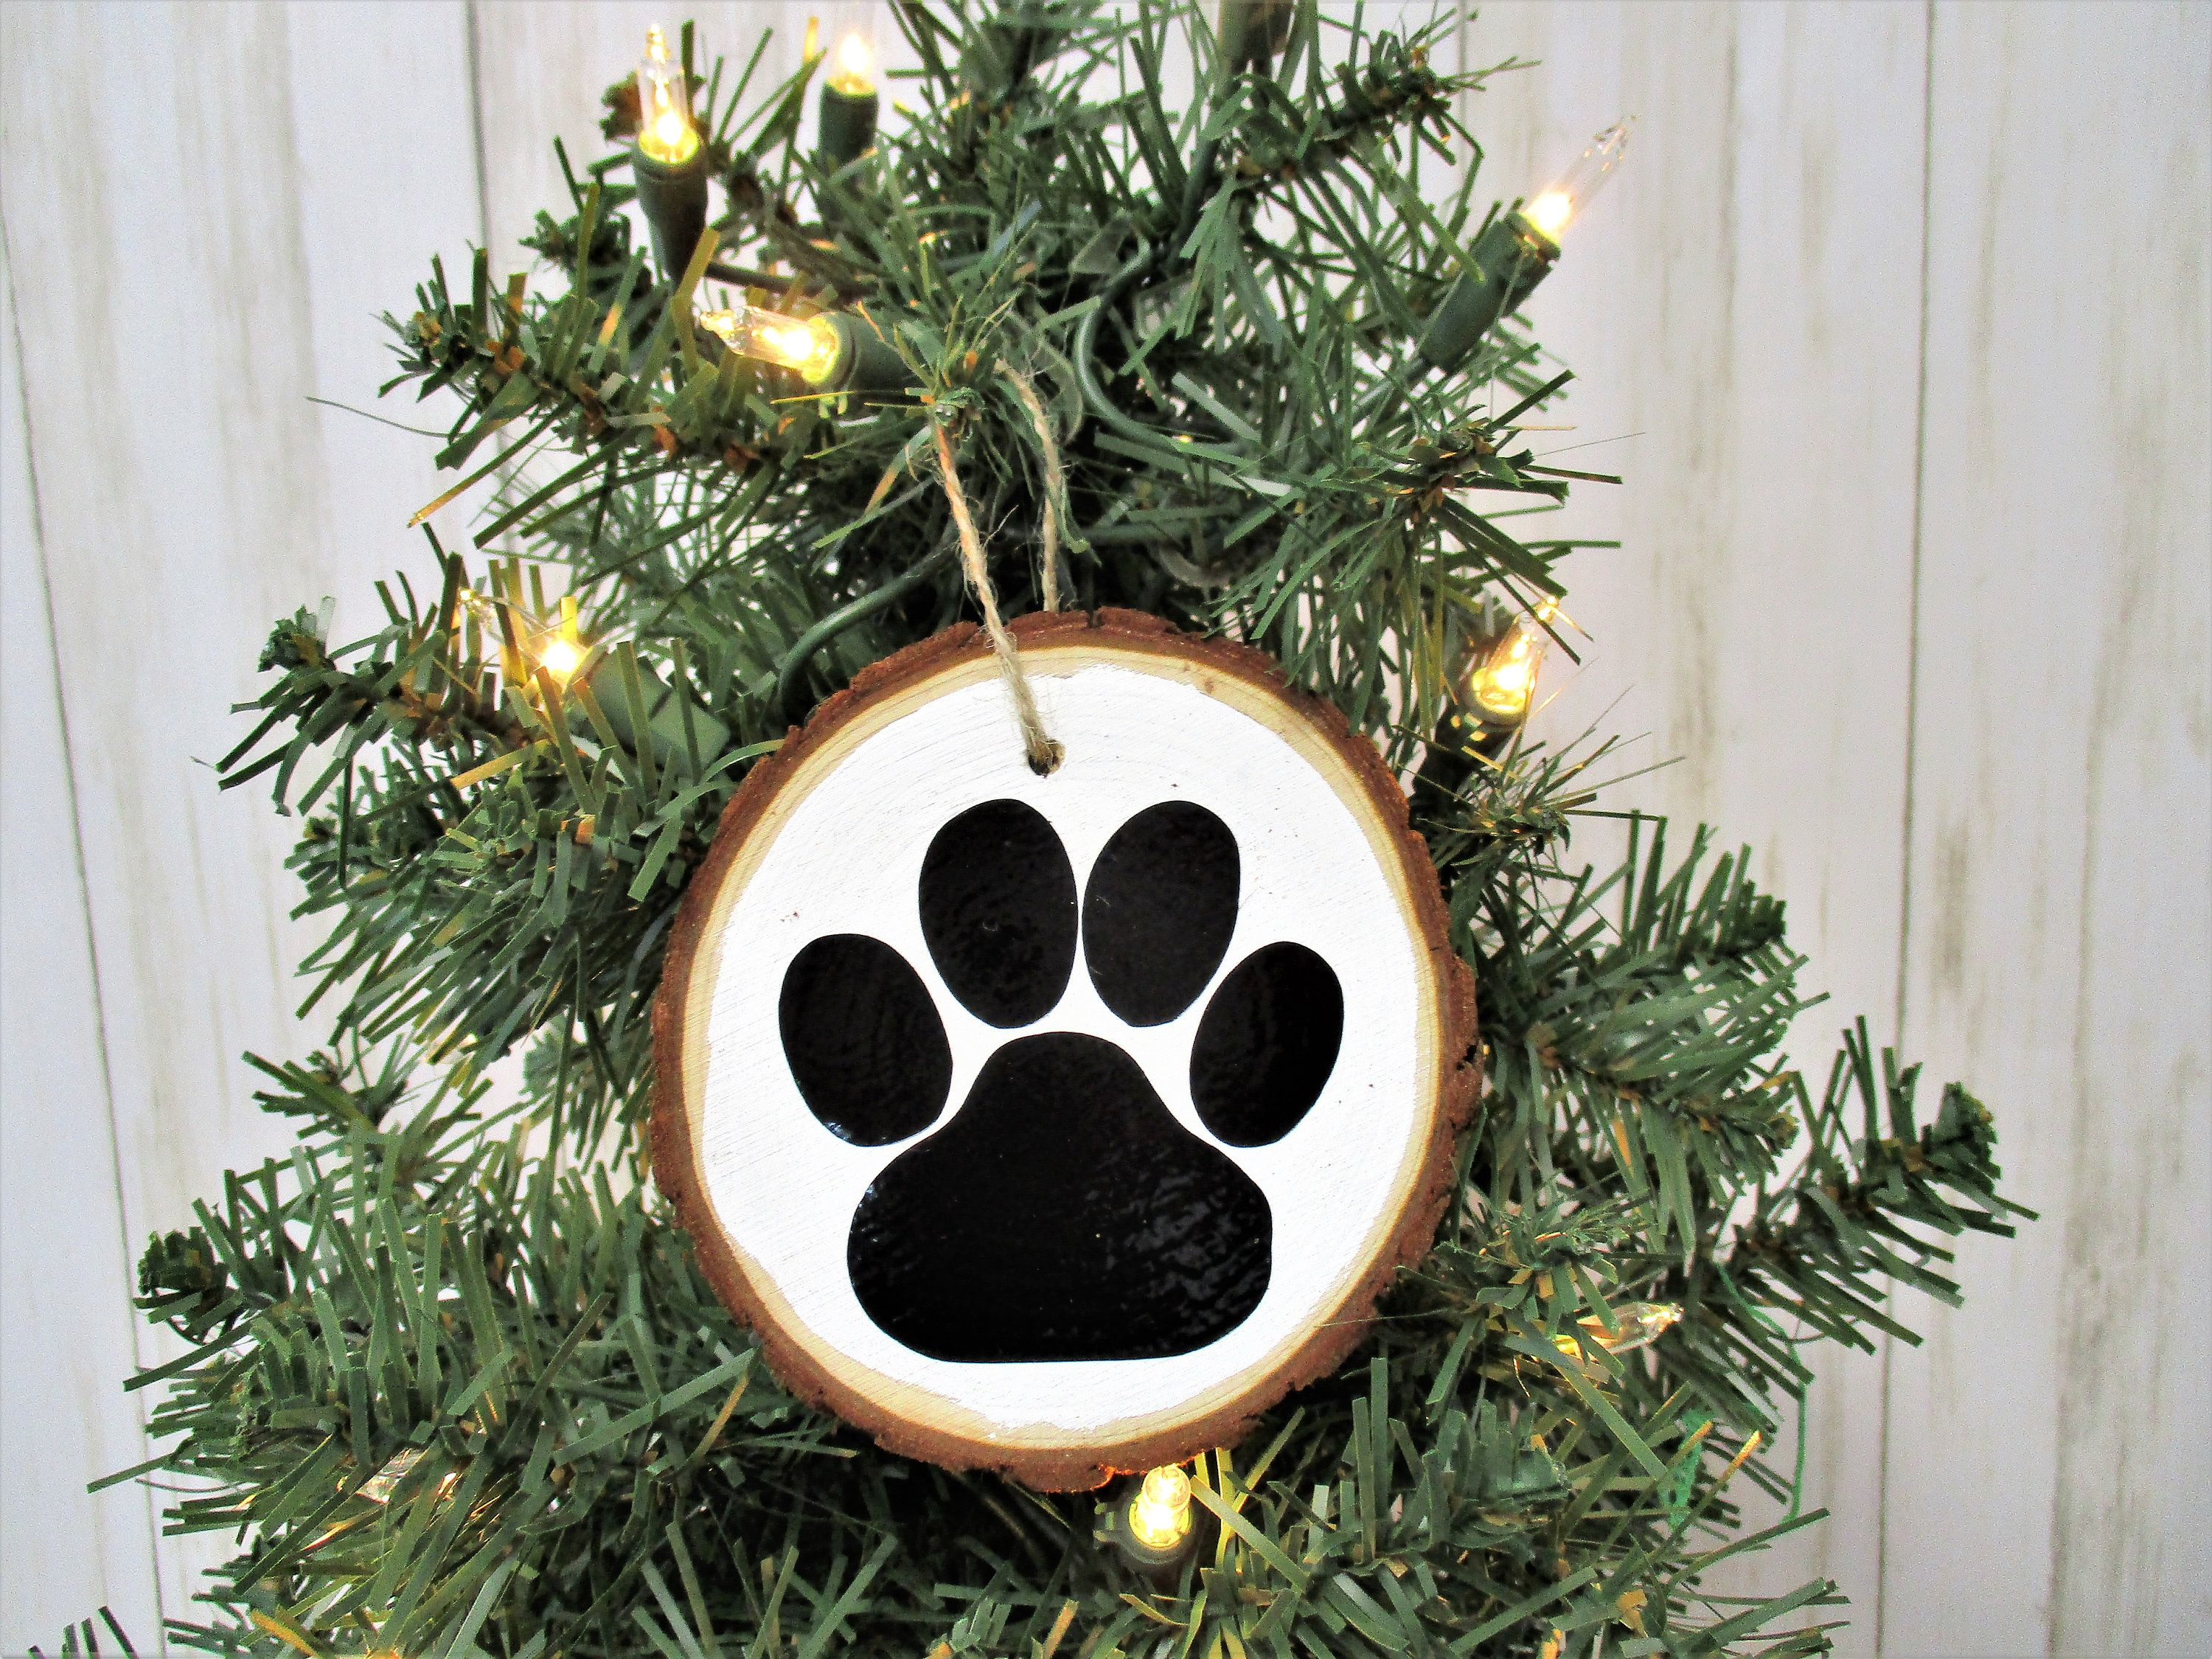 Dog Paw Christmas Wood Slice Ornament Country Christmas Etsy Country Christmas Ornaments Wood Christmas Ornaments Wood Slice Ornament